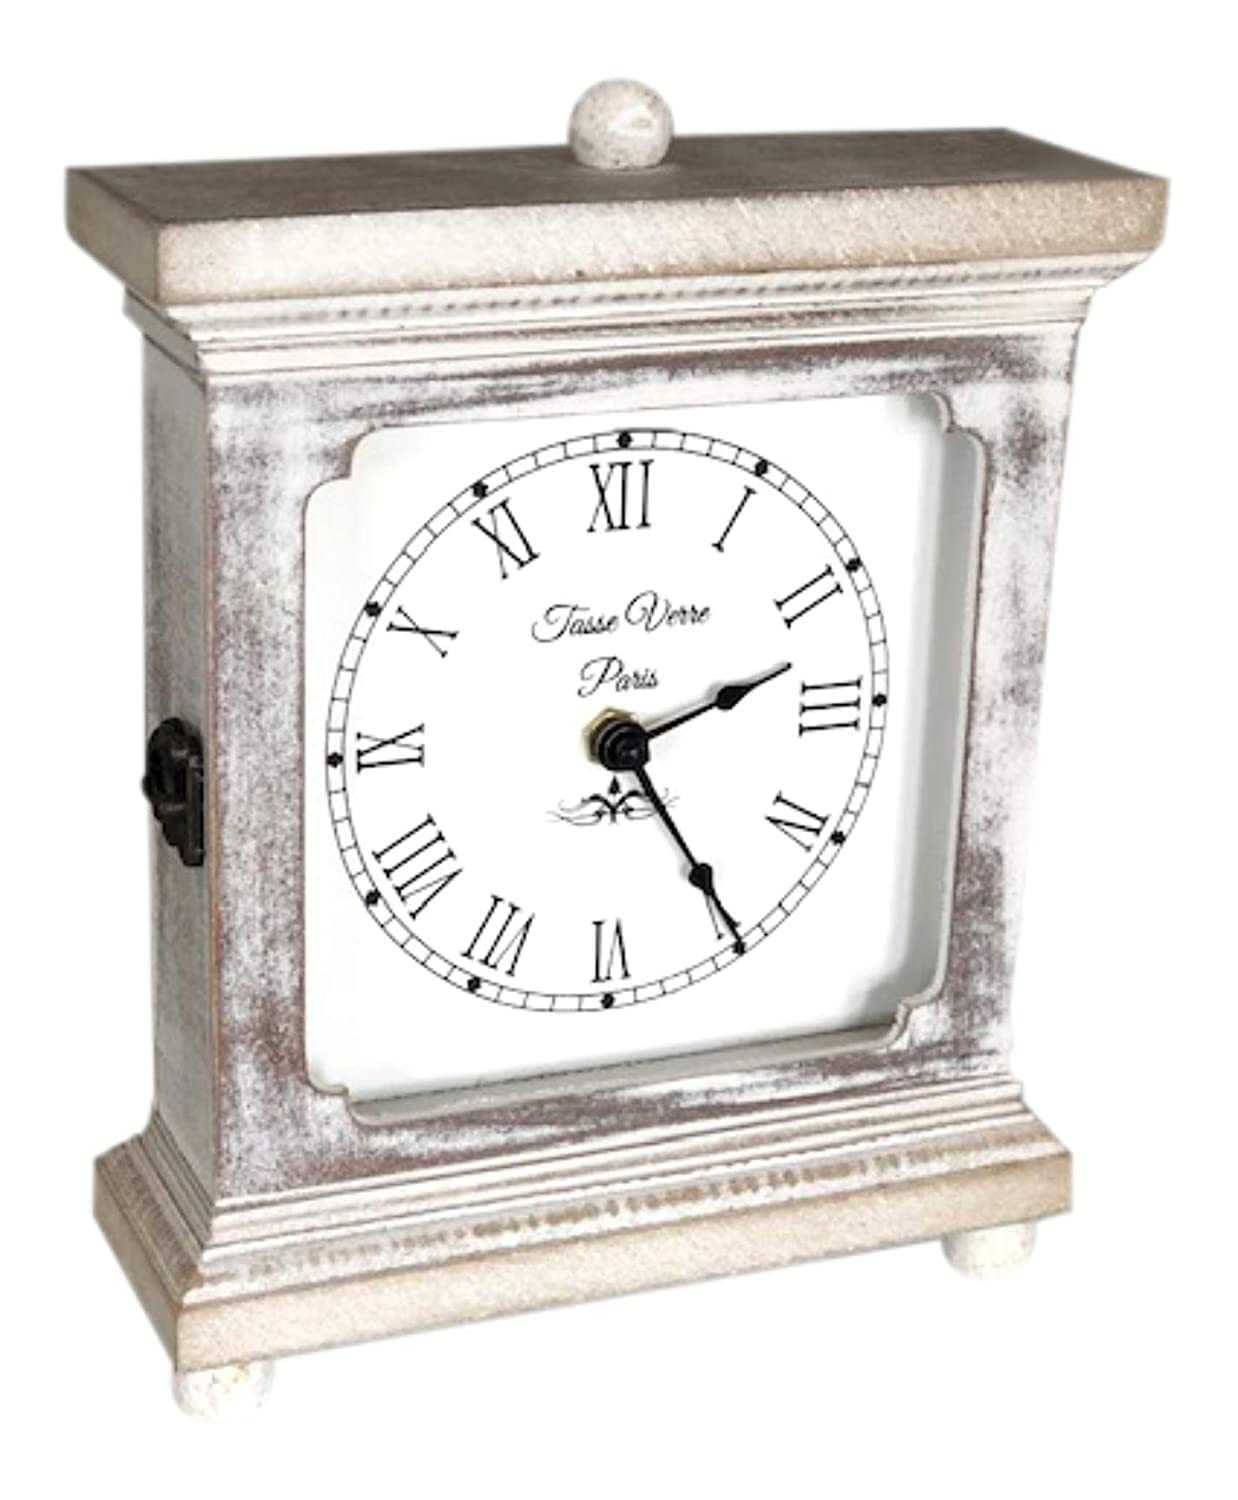 "Rustic Wood Clock for Shelf Table Or Desk 9""x7"" - Farmhouse Decor Distressed White Washed Mechanical Powered for Office, Bedroom Fireplace Mantel Living Family Room. AA Battery Operated Non-Digital"